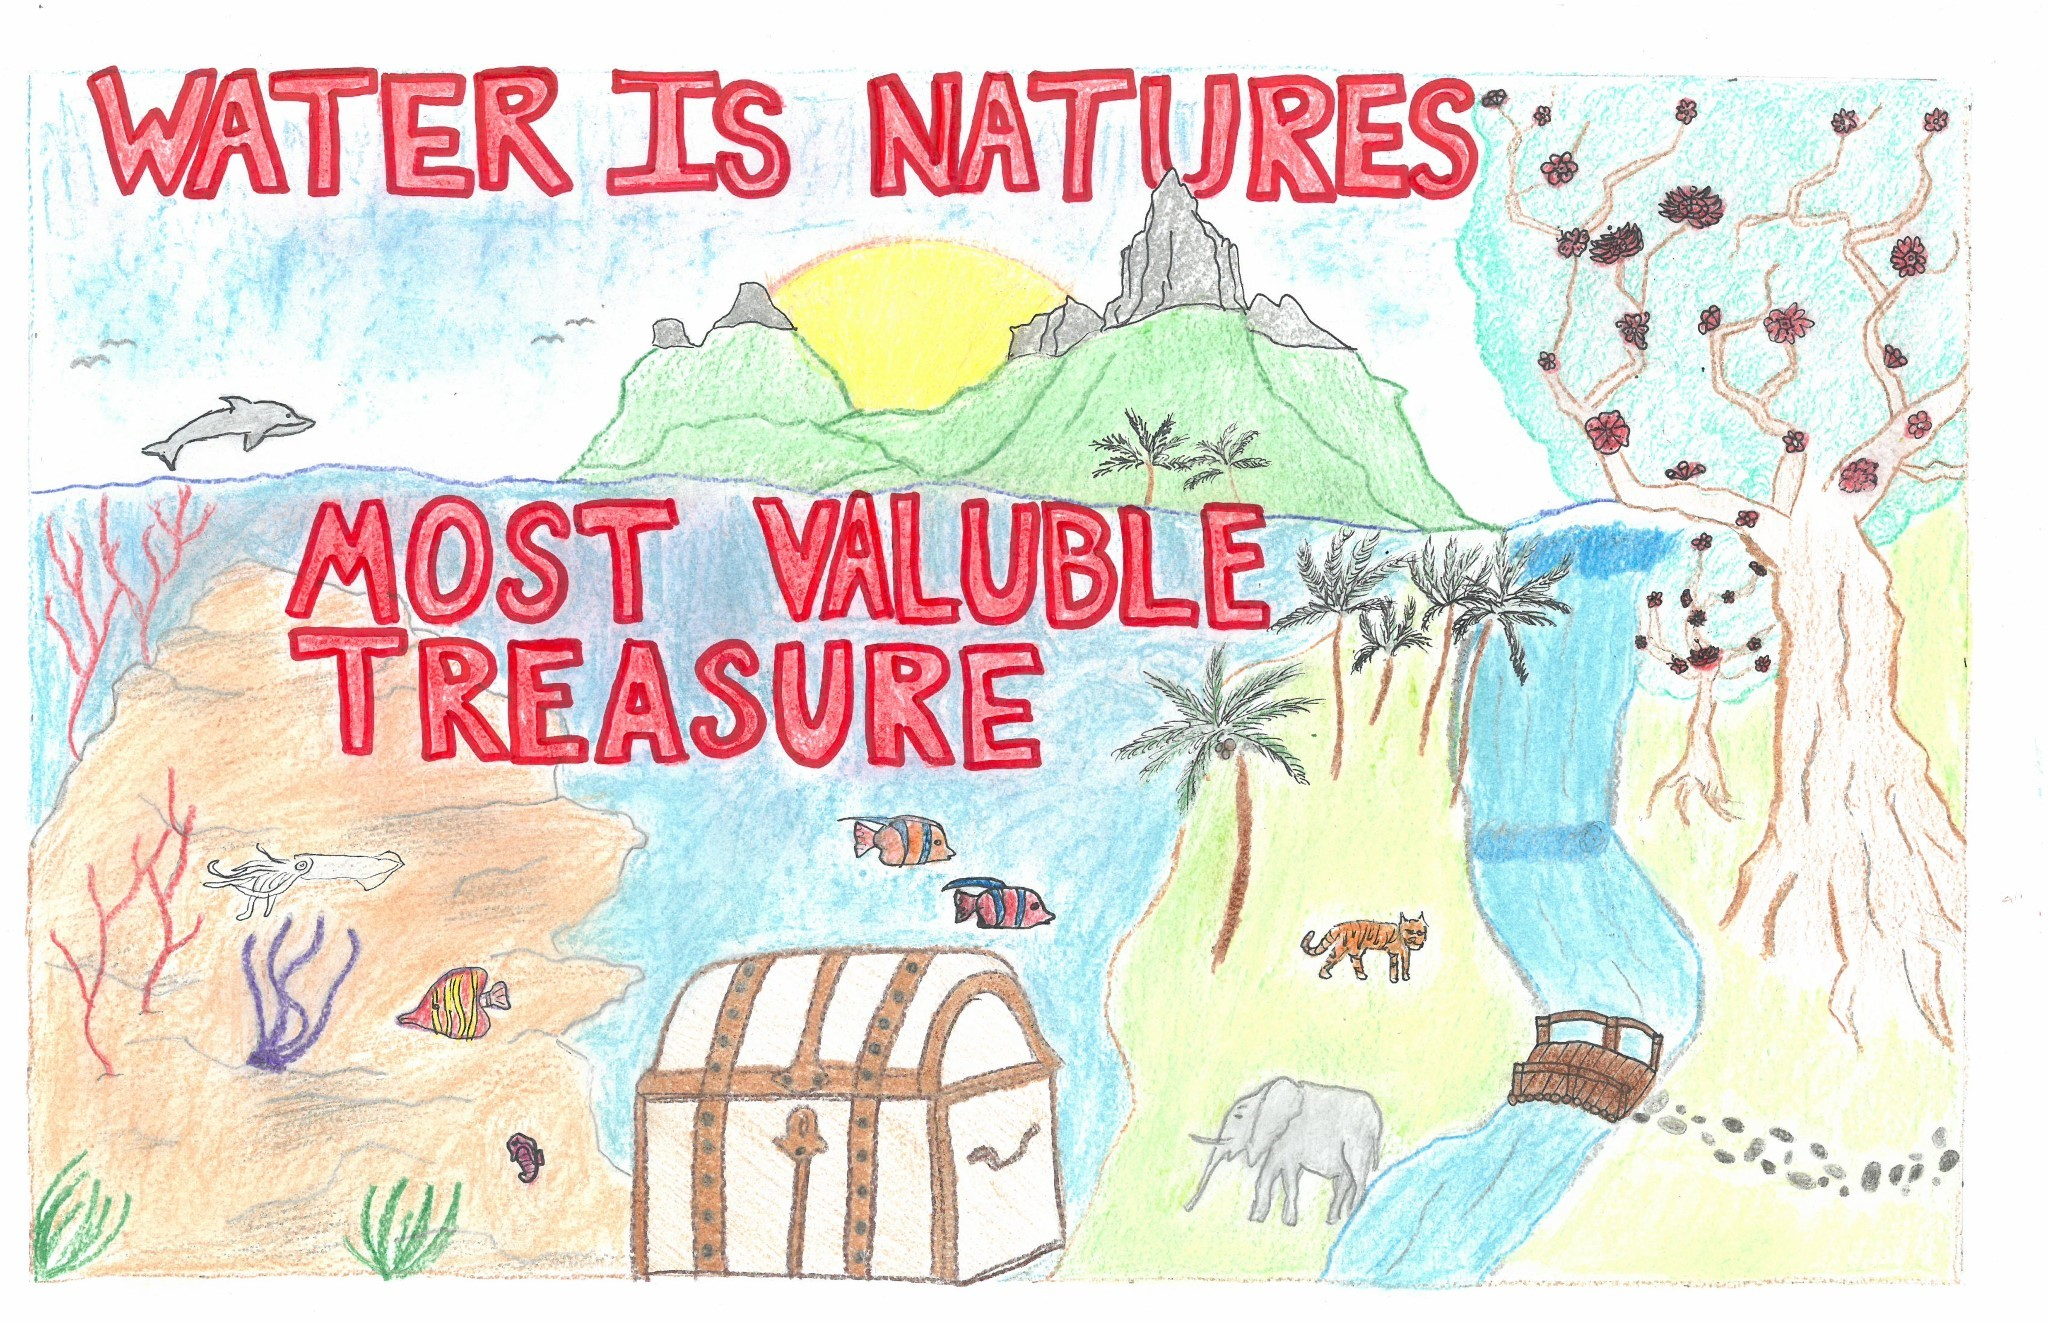 Grade 5 - 2nd place - Eliana Nava